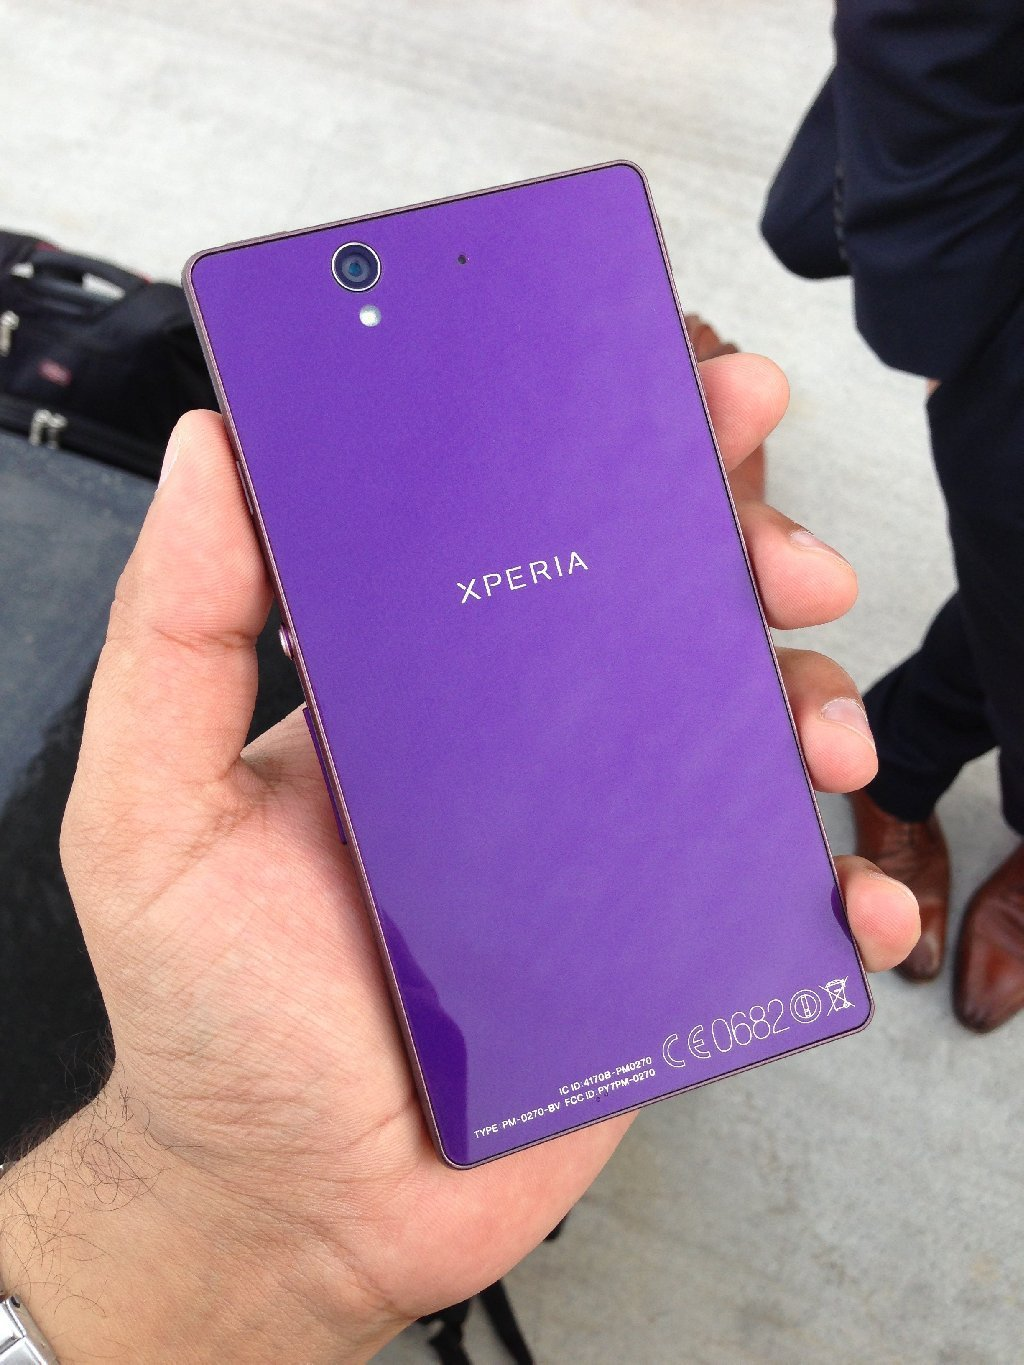 Sony Xperia Z: Purple Edition-GOING HOT!